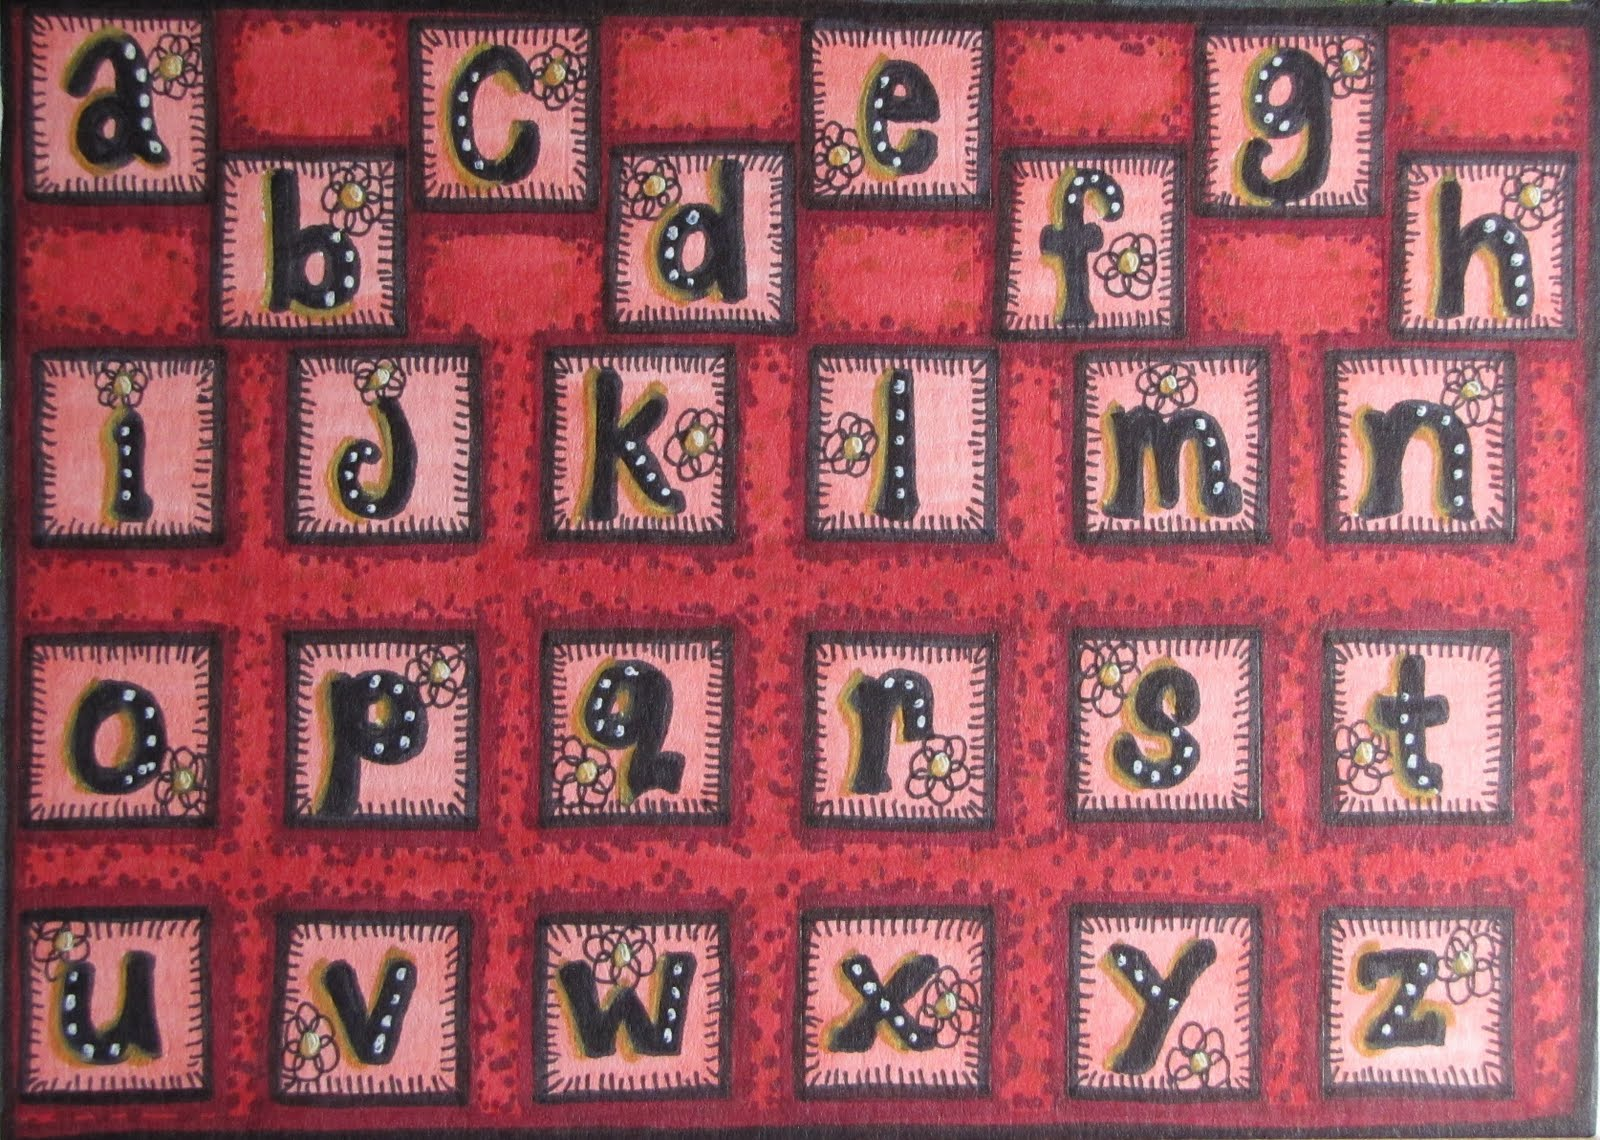 Kelly's Art Journaling: Creative Lettering Alphabets